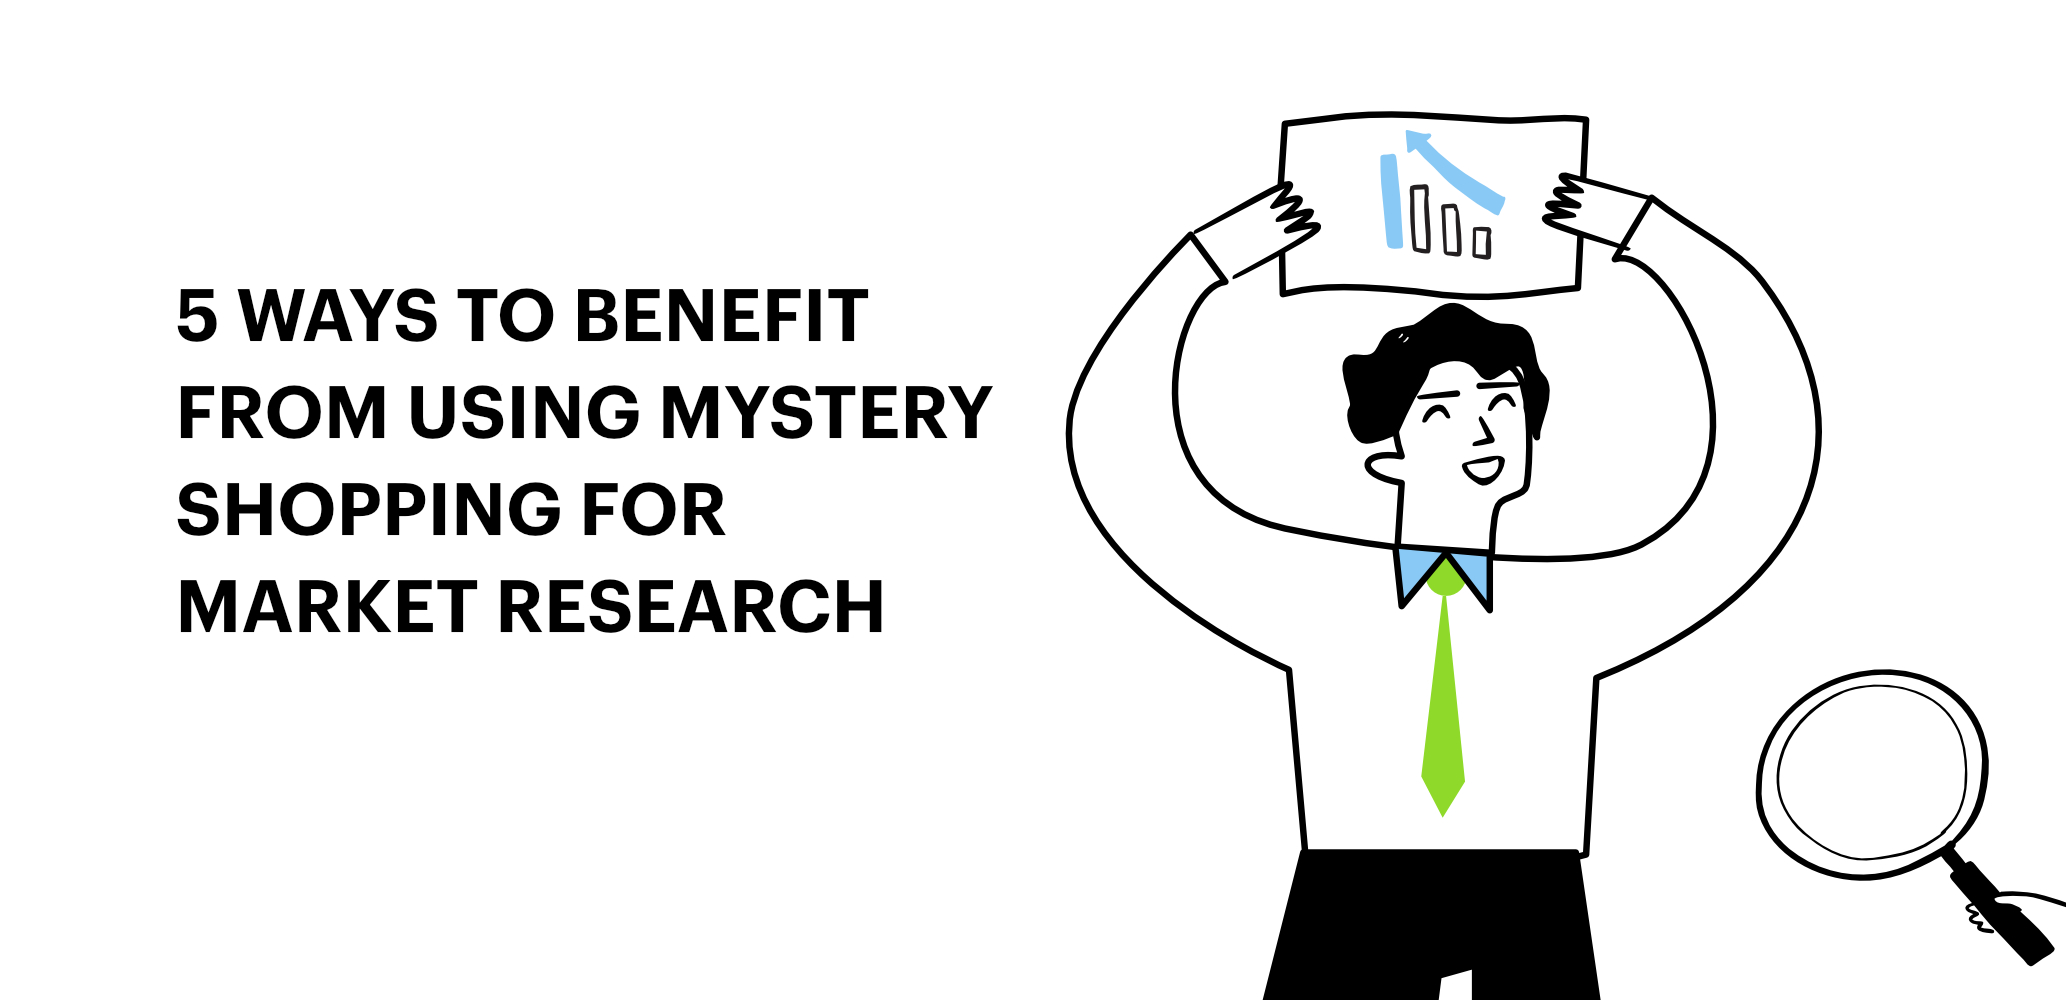 5 ways to benefit from using mystery shopping for market research